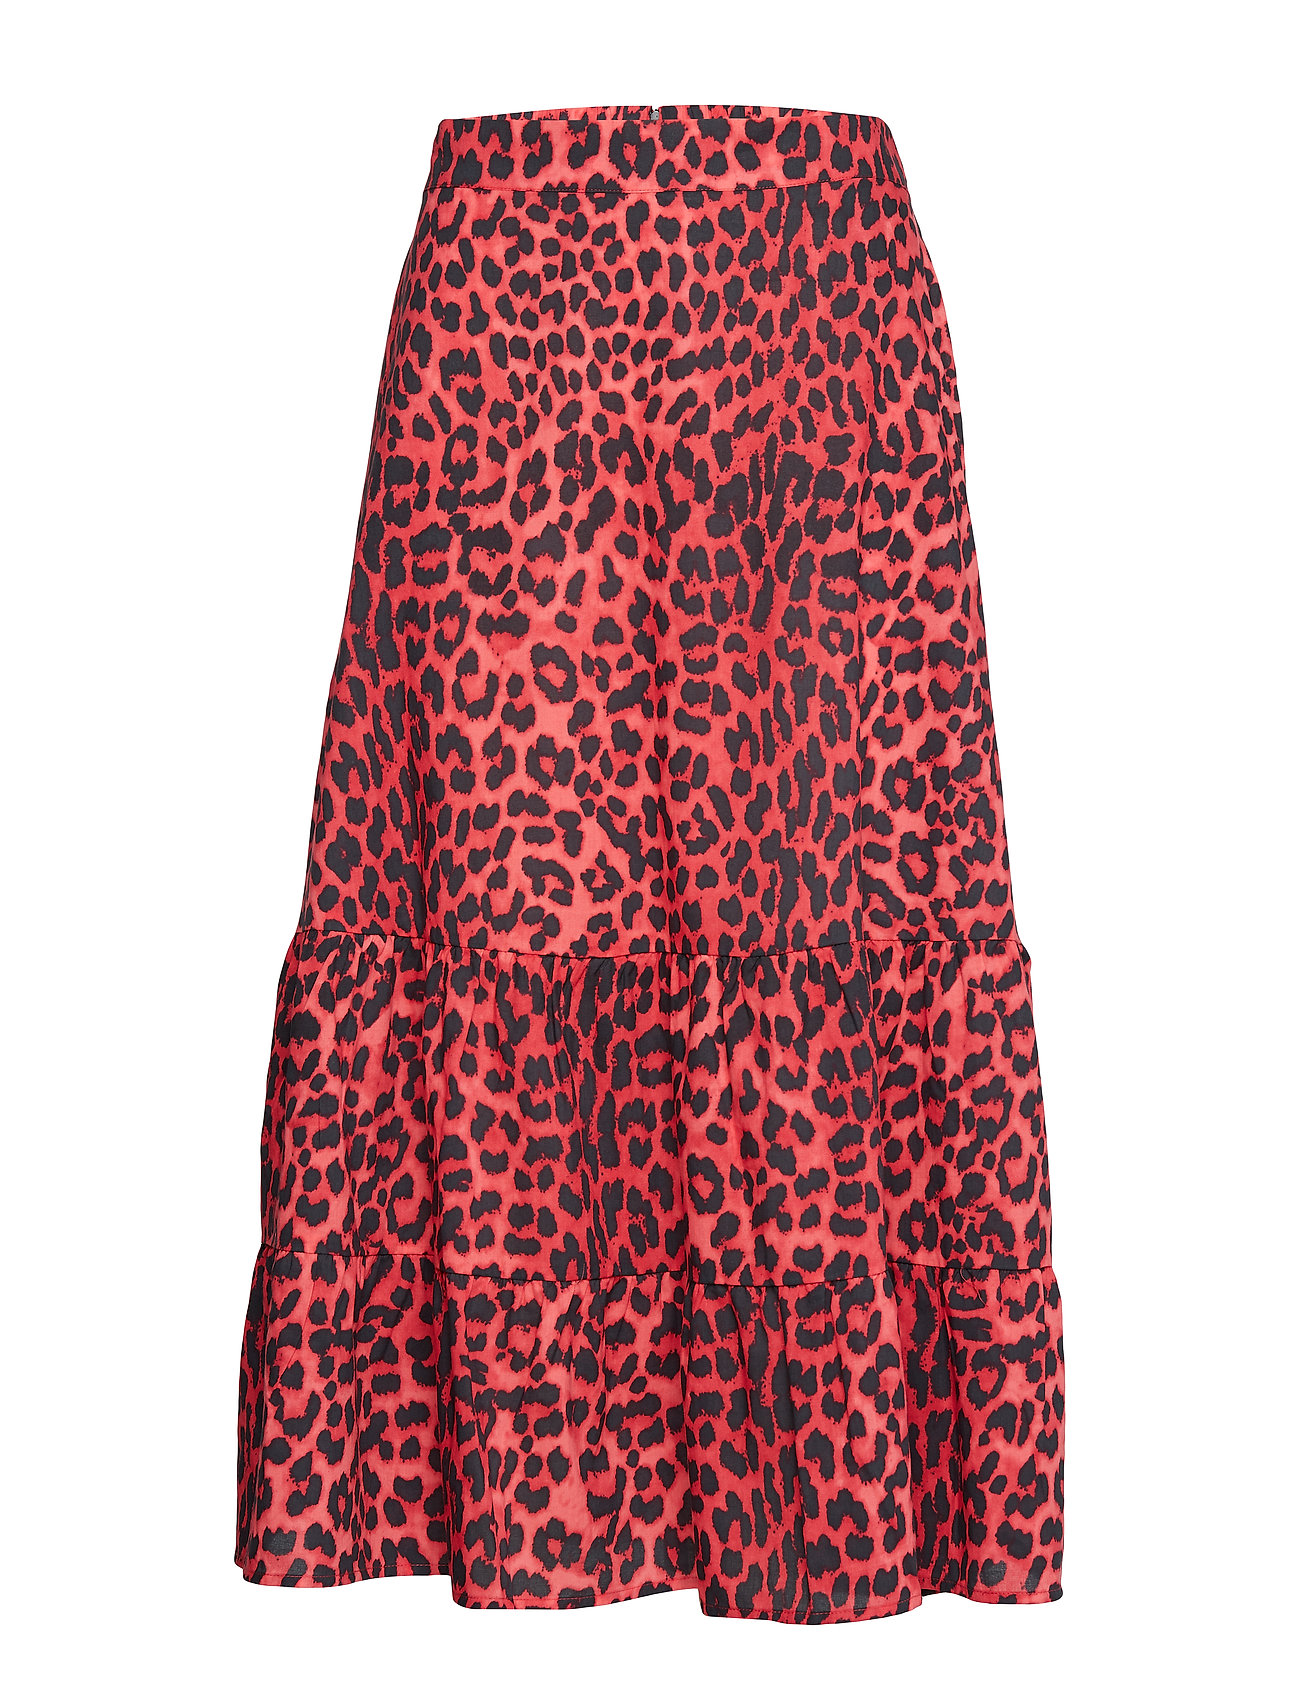 LeoEnvii Enharry Enharry Skirt Aop 6629scarlet 6629scarlet LeoEnvii Aop Skirt Skirt Enharry 5R4ALj